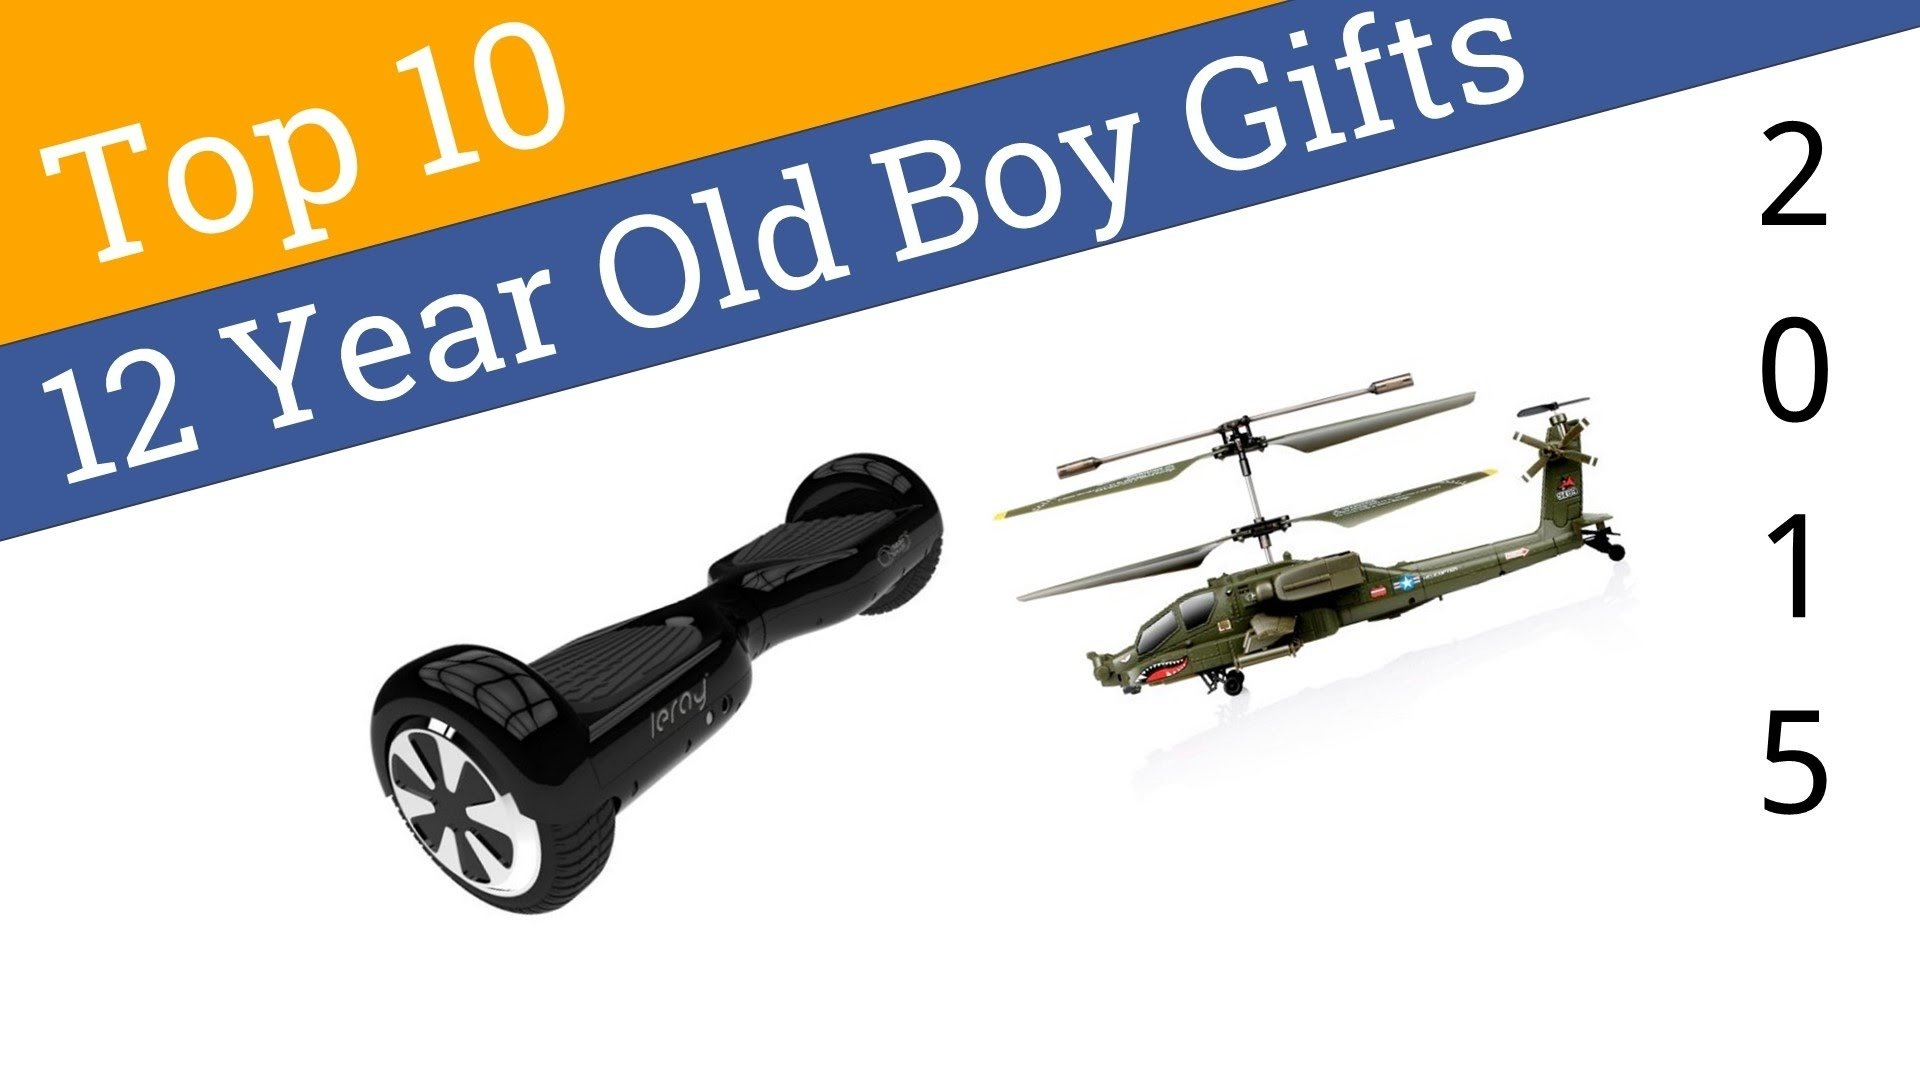 10 Beautiful Gift Ideas 12 Year Old Boy